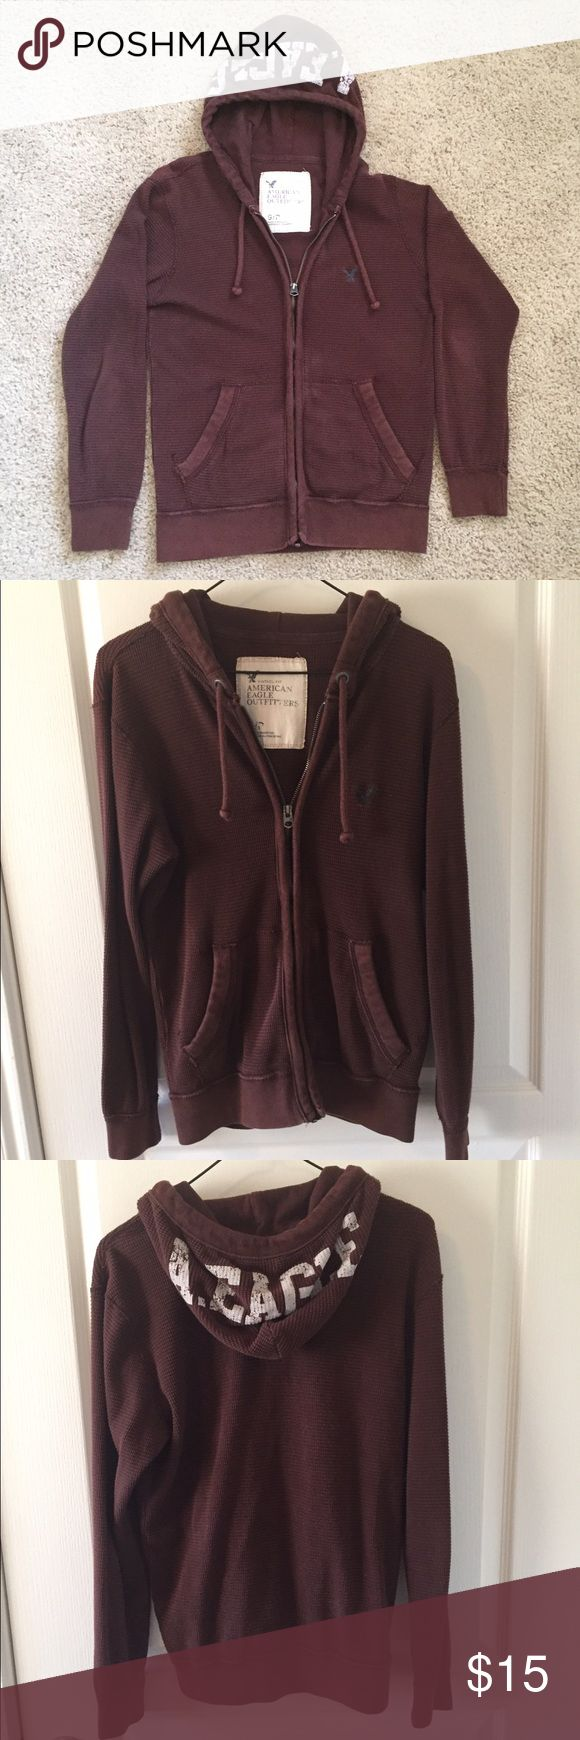 American Eagle maroon men's lightweight jacket AE maroon jacket. Drawstring hoodie. Zipper front. 2 front pockets. 100% cotton. American Eagle Outfitters Jackets & Coats Lightweight & Shirt Jackets